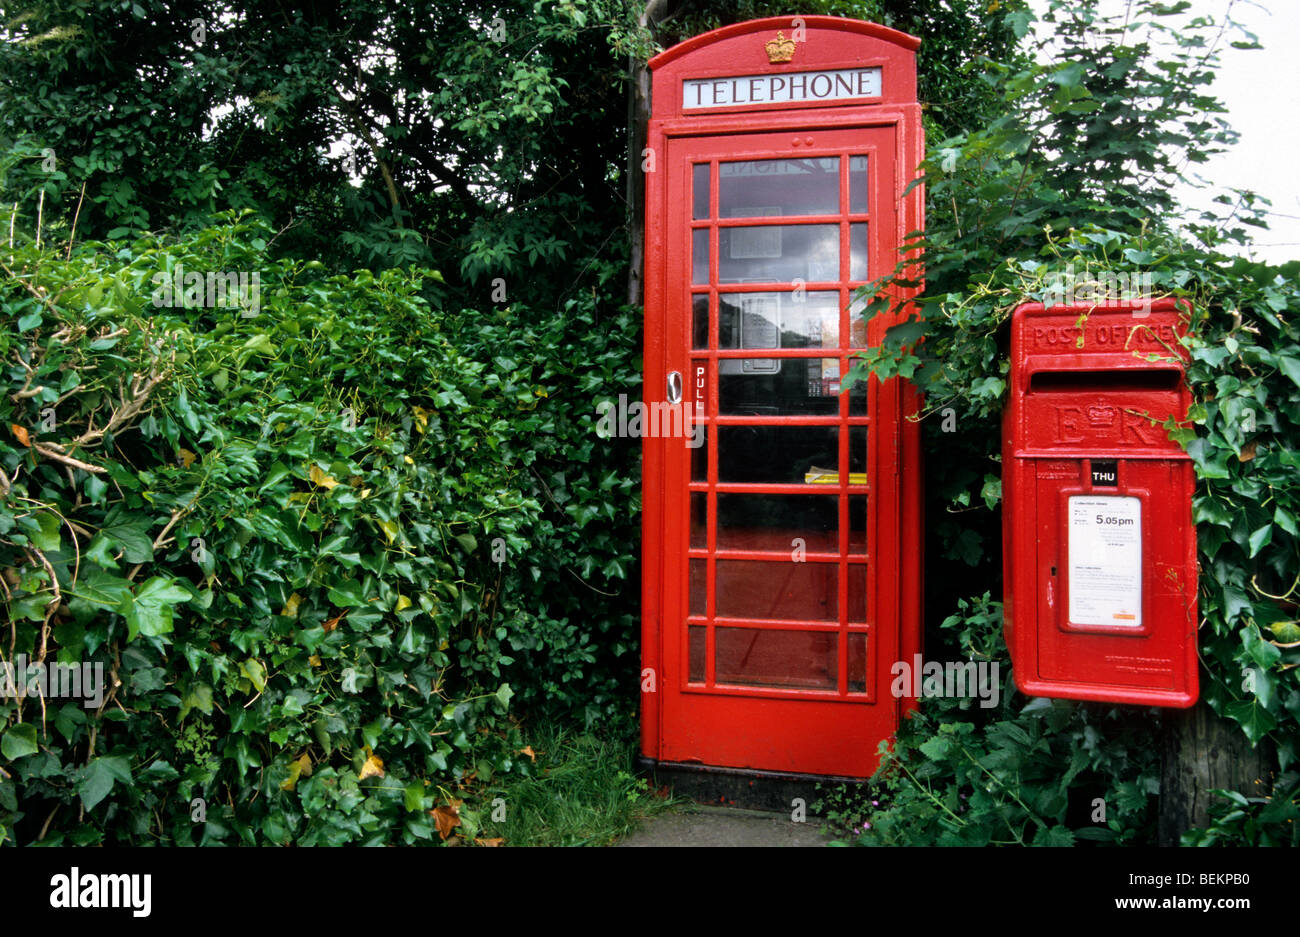 Classic red phone booth and postoffice box at Yorkshire, England, UK - Stock Image